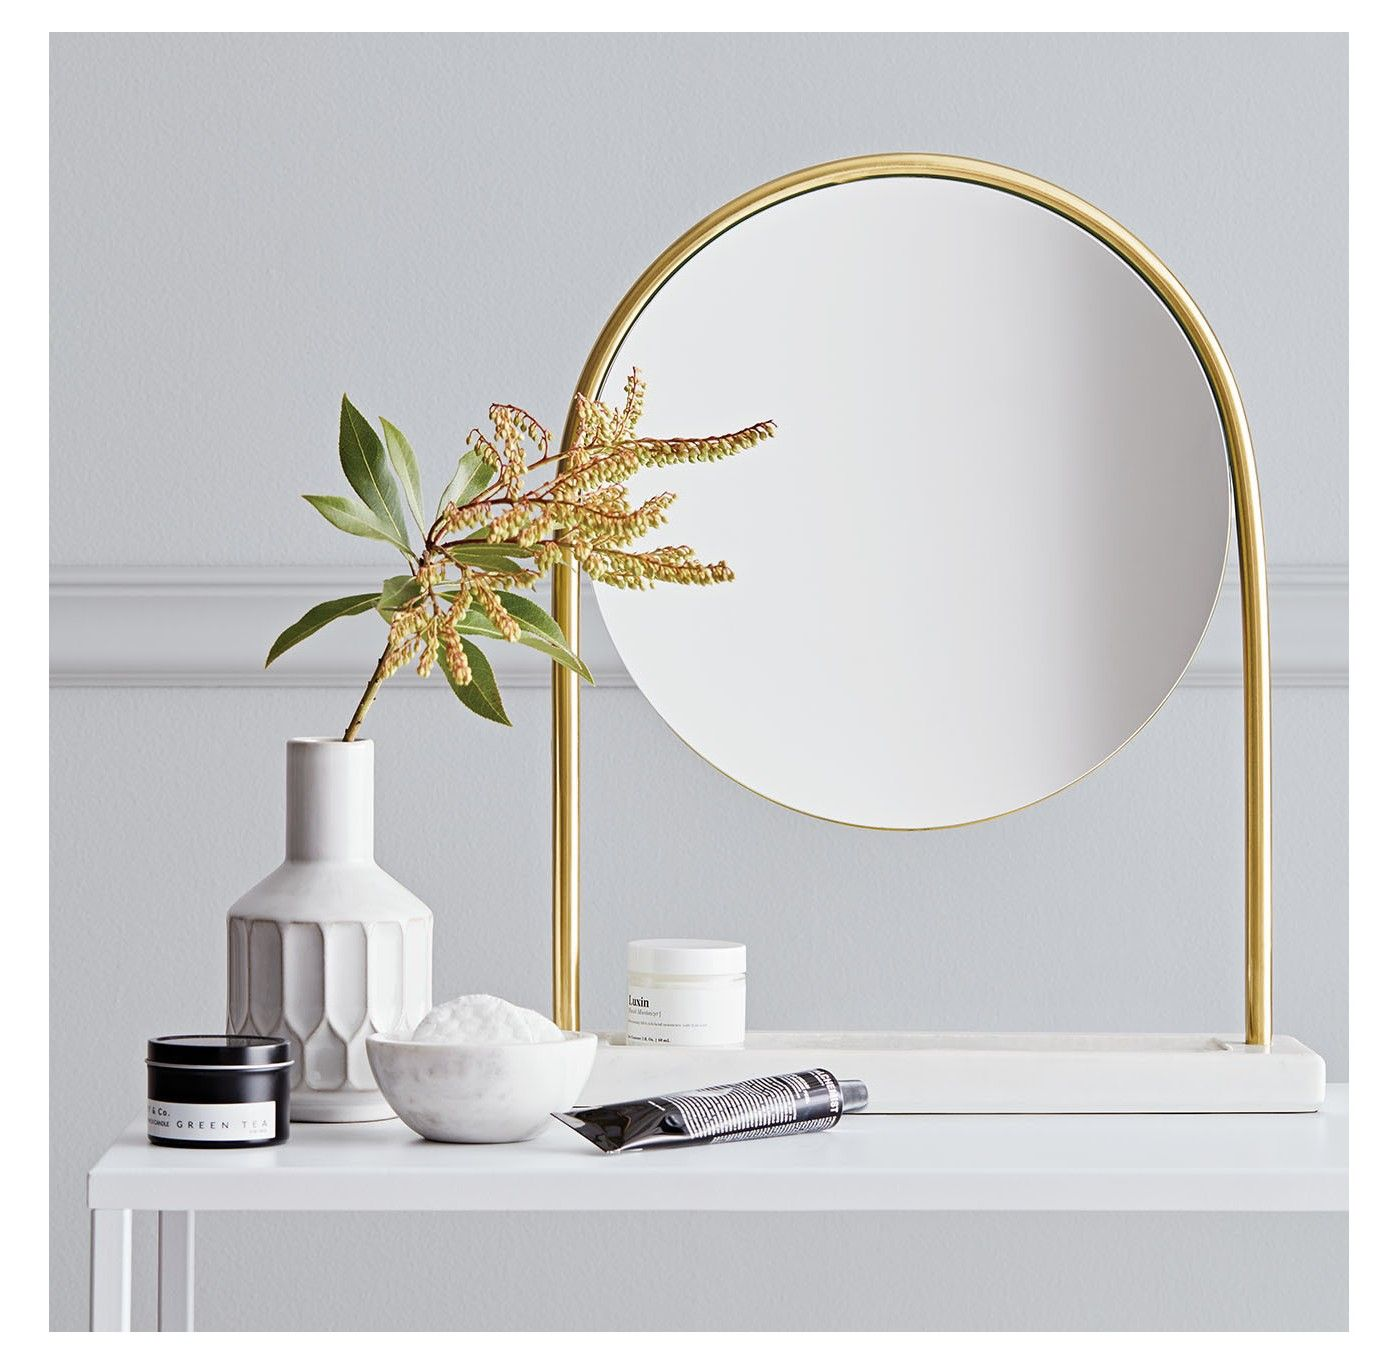 Round Vanity Mirror On Marble Stand Project 62 Target Freestanding Mirrors Target Home Decor Decor Interior Design